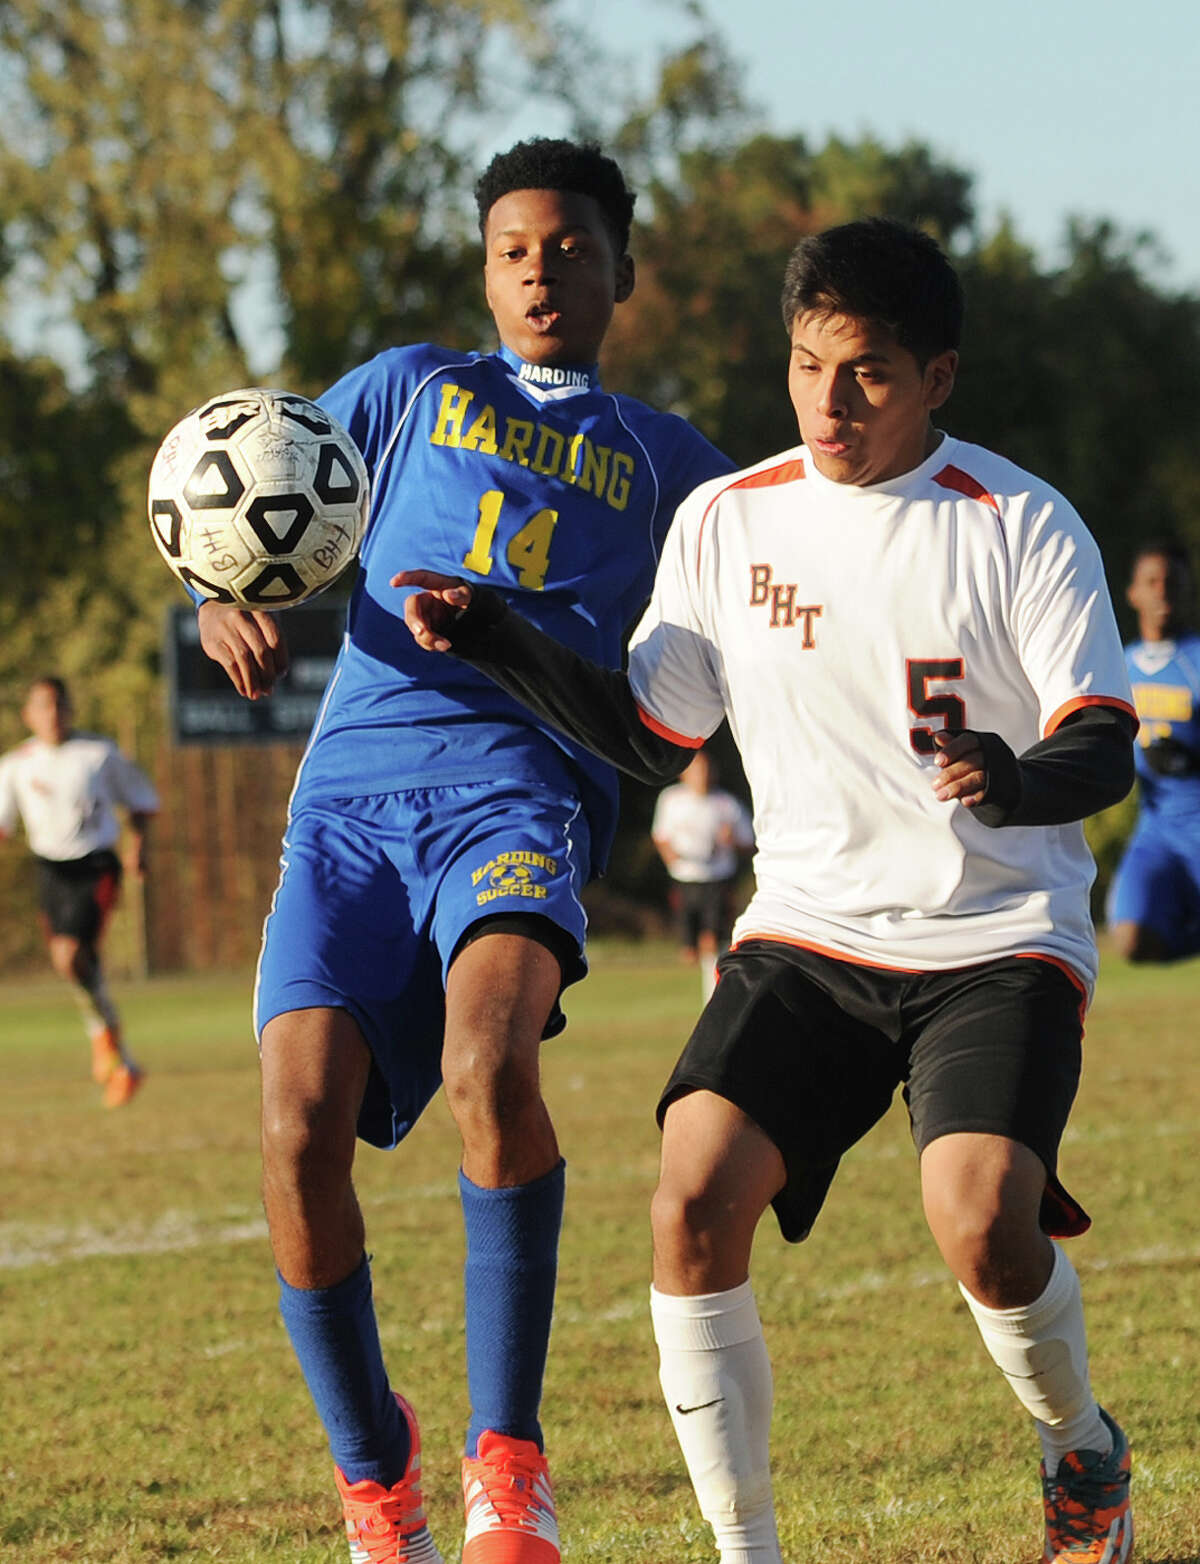 Harding's Sodique Allen battles for the ball with Bullard Havens' Danilo Lligicota during their boys soccer game at Bullard Havens Technical High School in Bridgeport, Conn. on Monday, October 19, 2015.